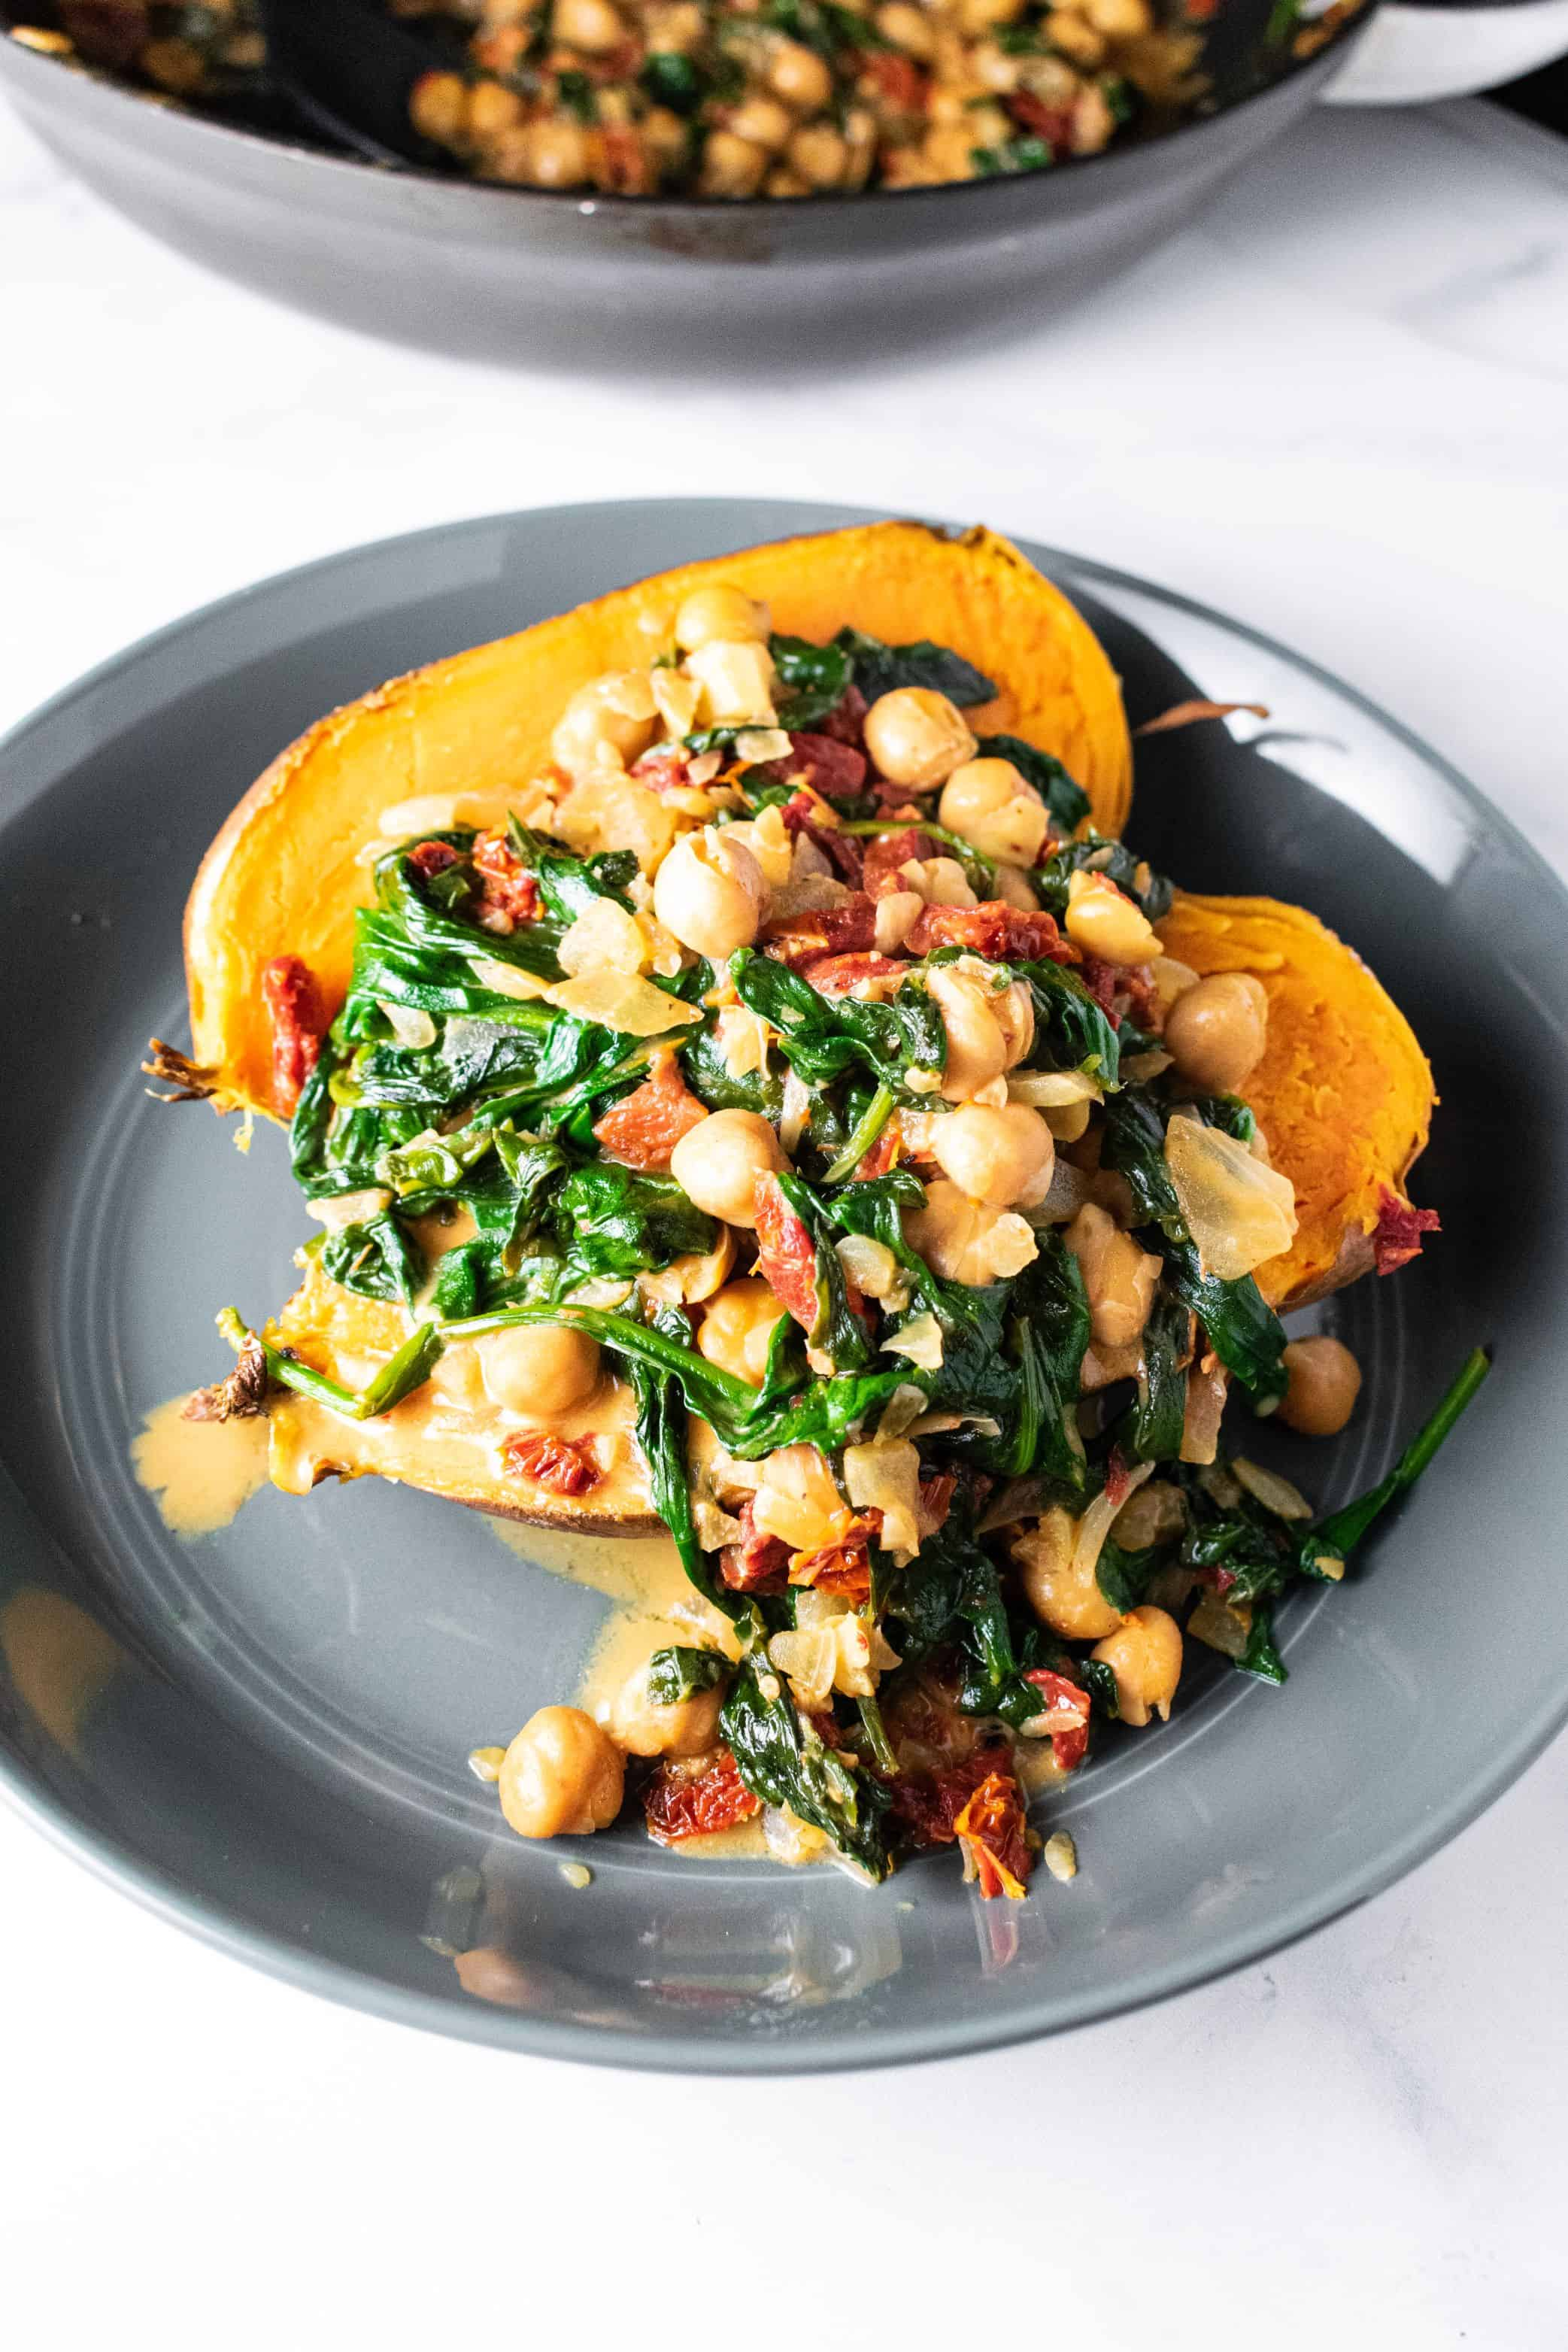 Sweet potato with spinach